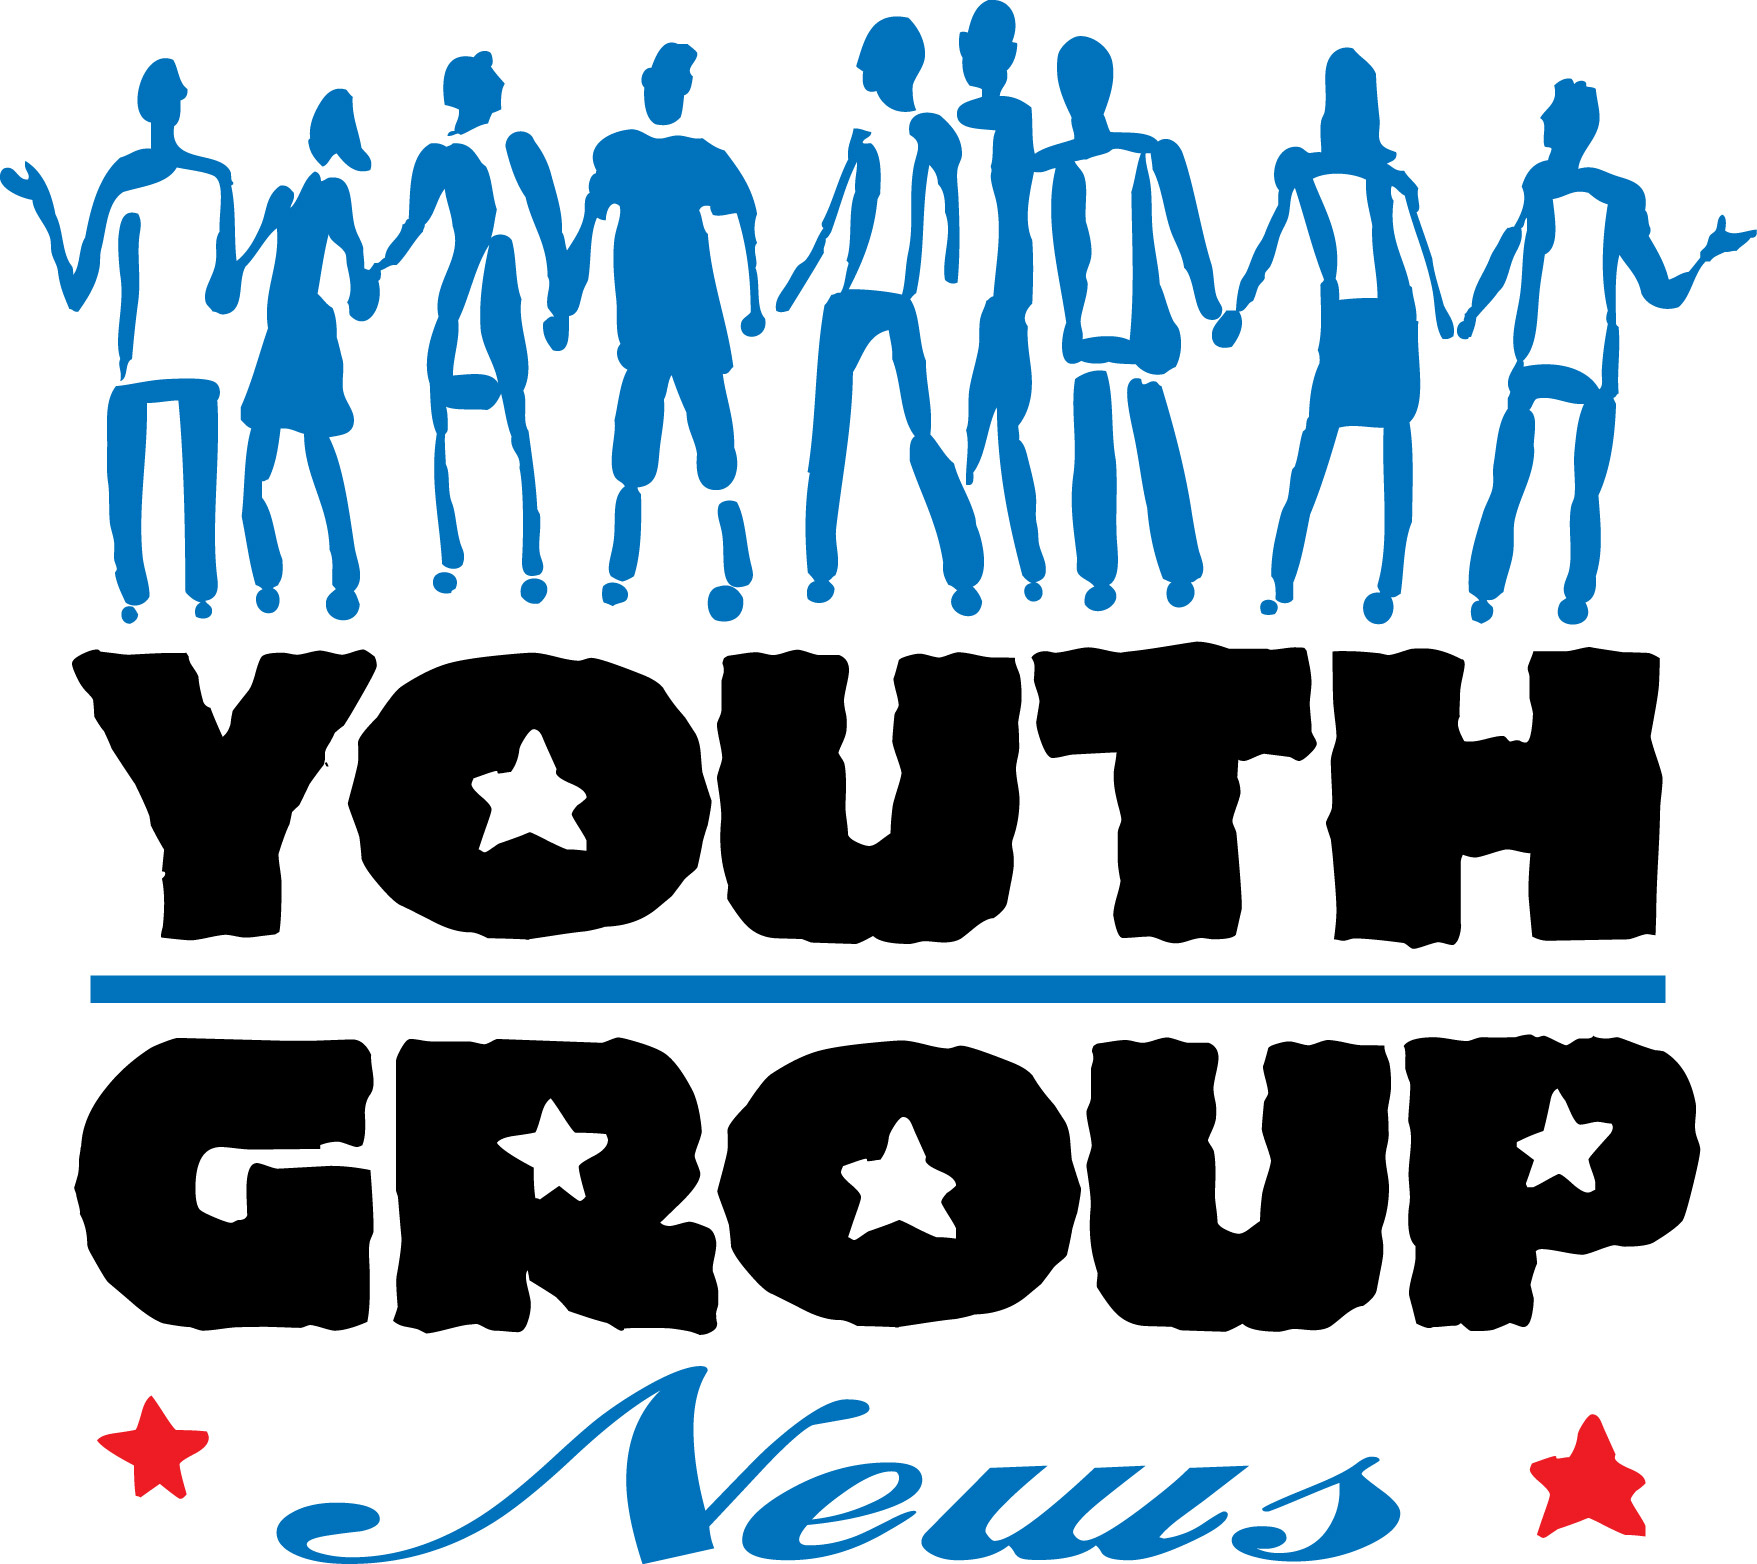 Youth Group Clipart #1 - Youth Group Clip Art